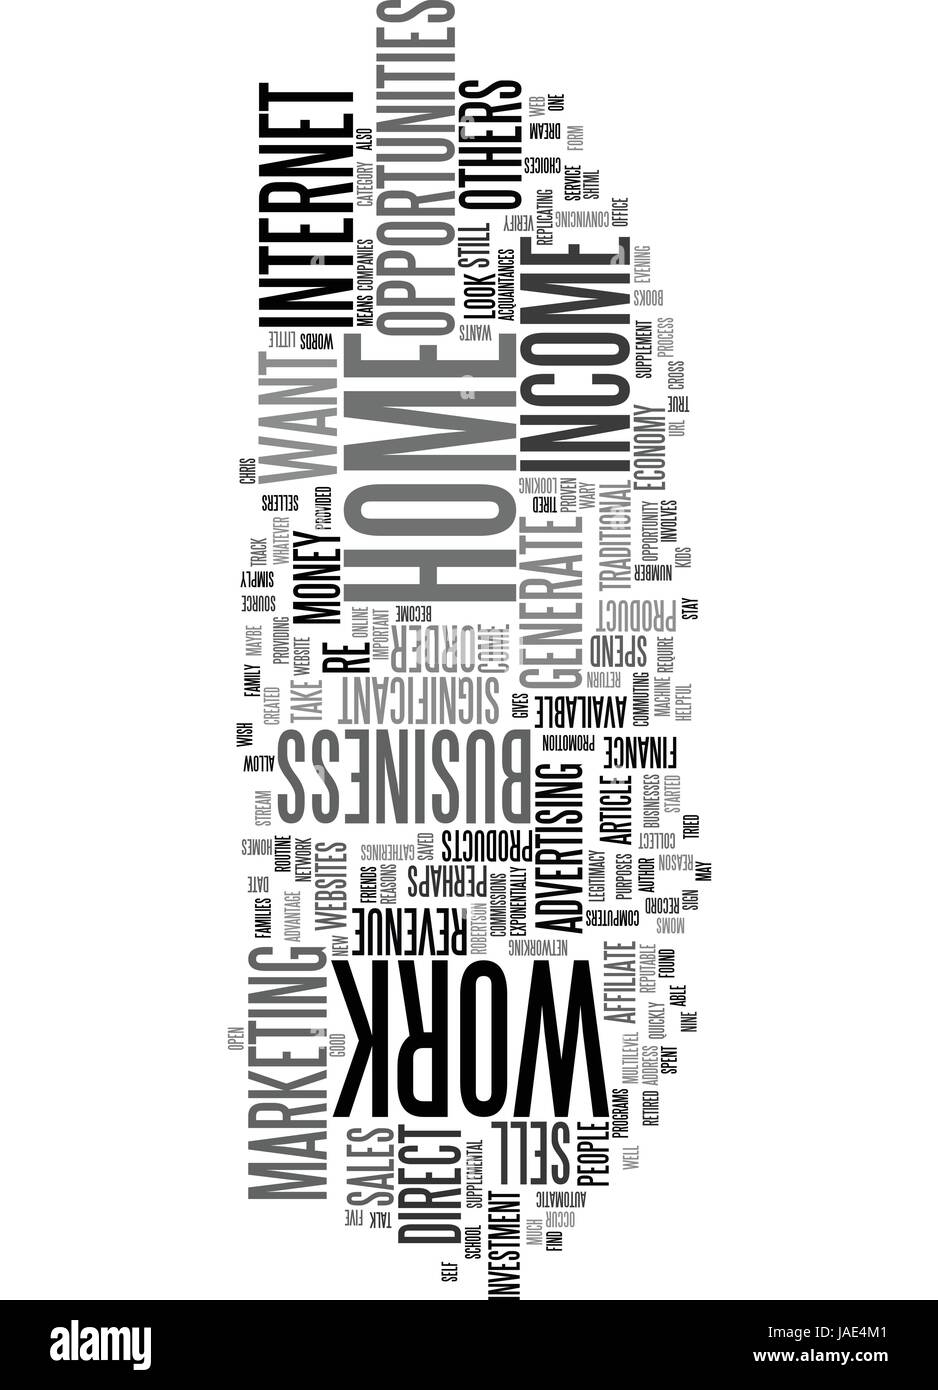 WORK AT HOME INCOME OPPORTUNITIES TEXT WORD CLOUD CONCEPT - Stock Vector